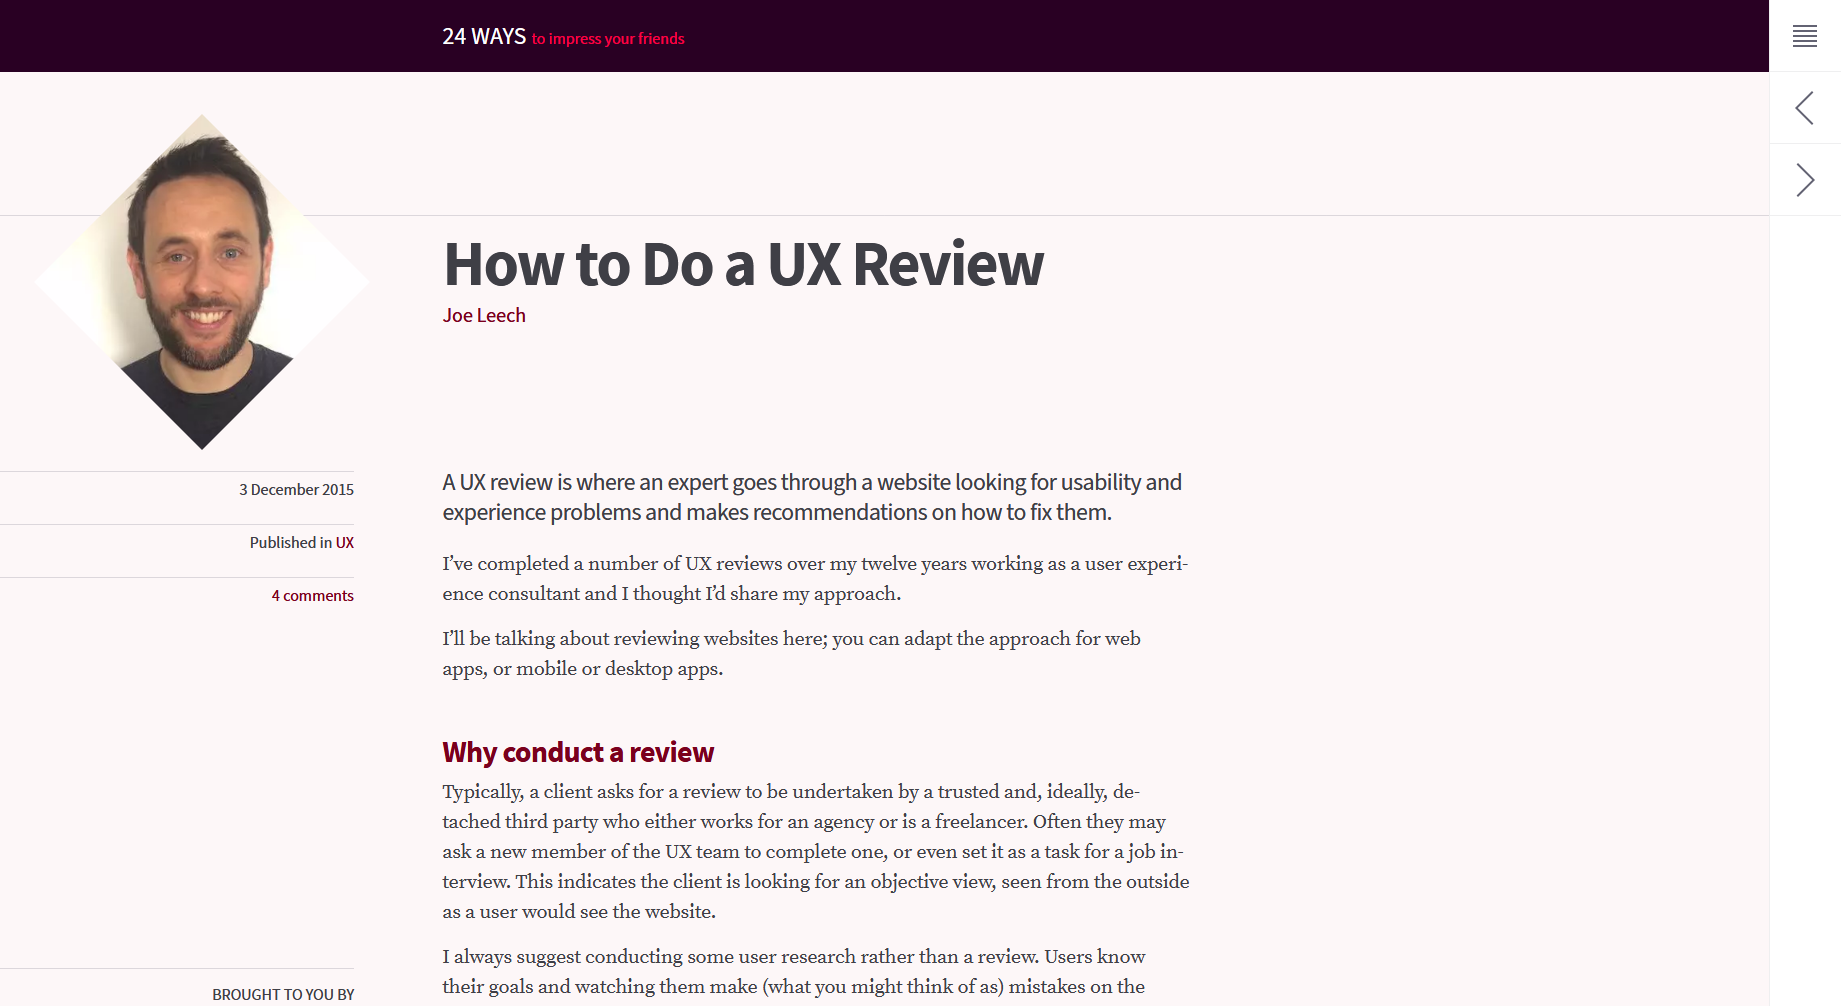 How to Do a UX Review